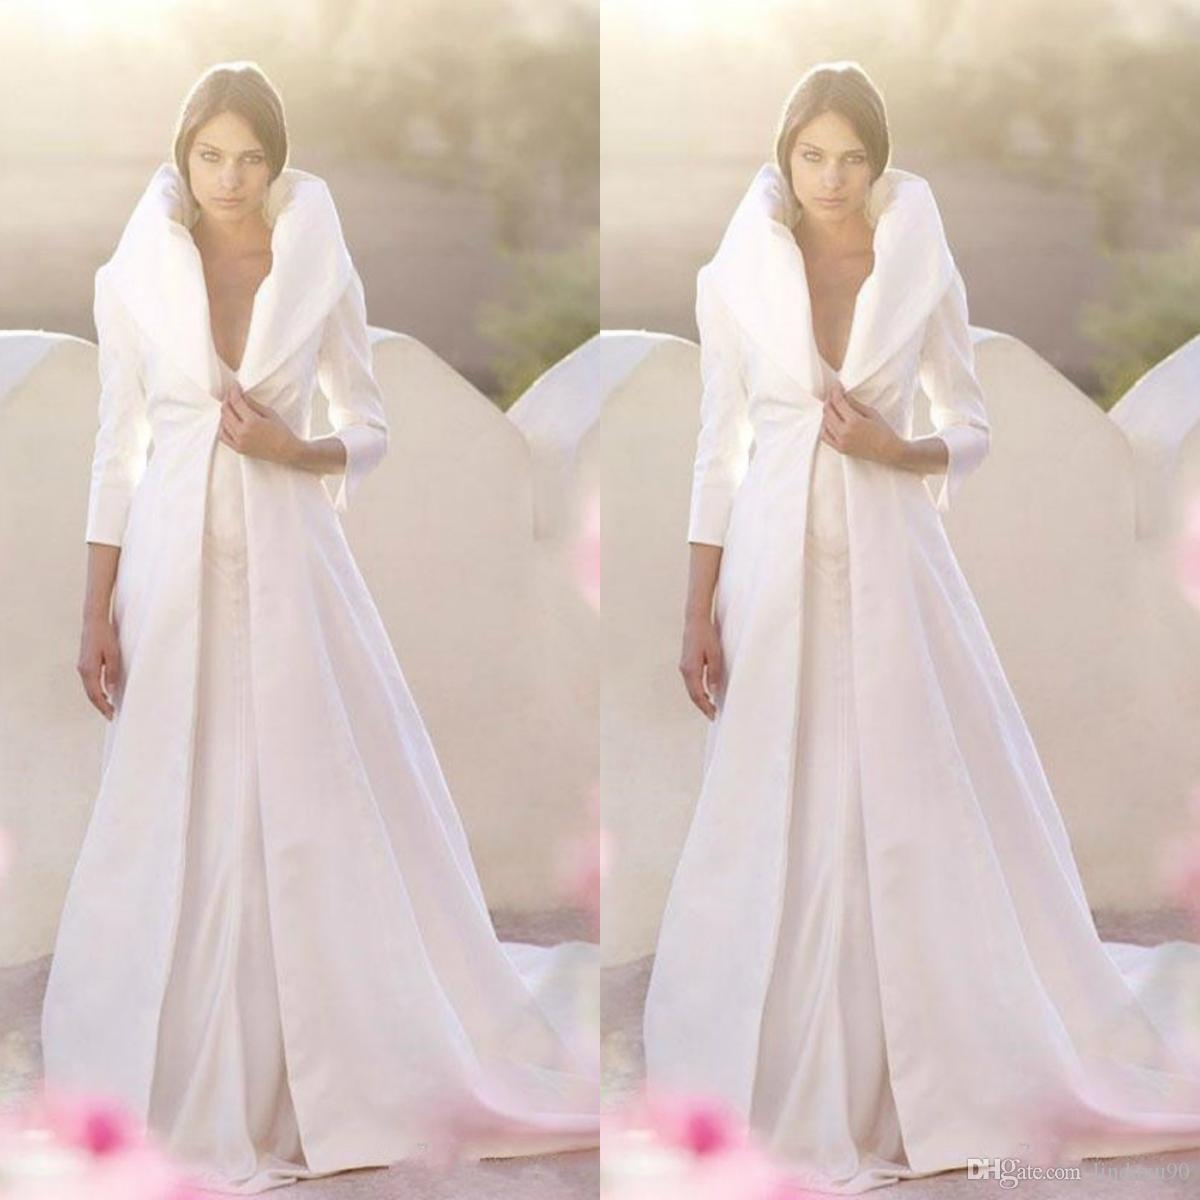 2019 Herbst Winter White Bridal Wrap Jacke Satin in voller Länge Mäntel mit langen Ärmeln A Line Bridal Wedding Party Mantel nach Maß